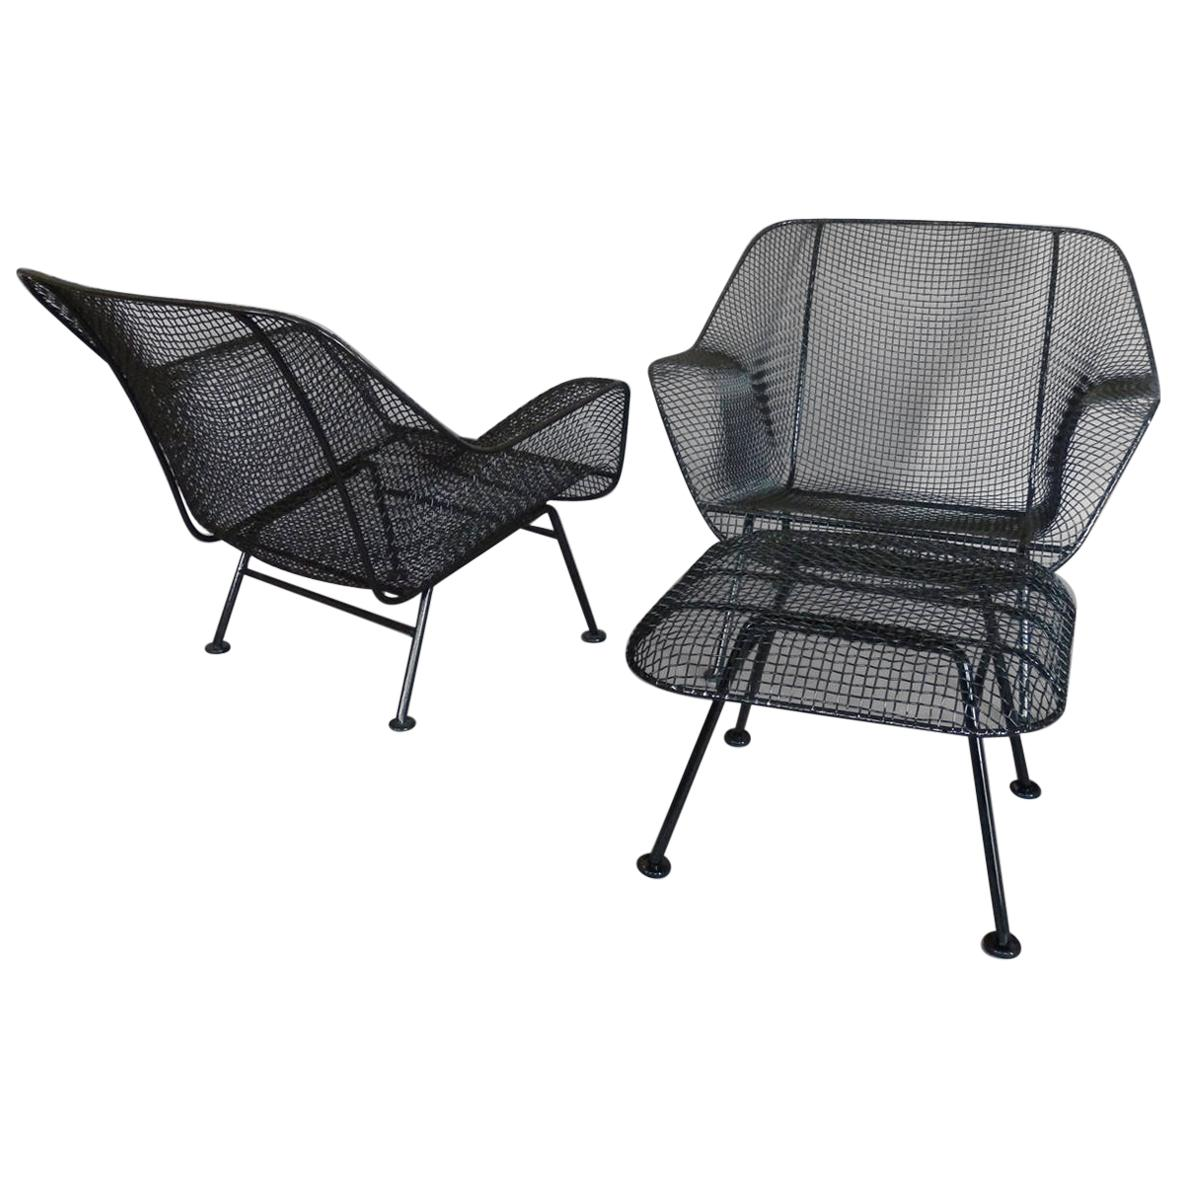 Pair of Woodard Wrought Iron and steel Mesh Lounge Chairs with matching ottoman